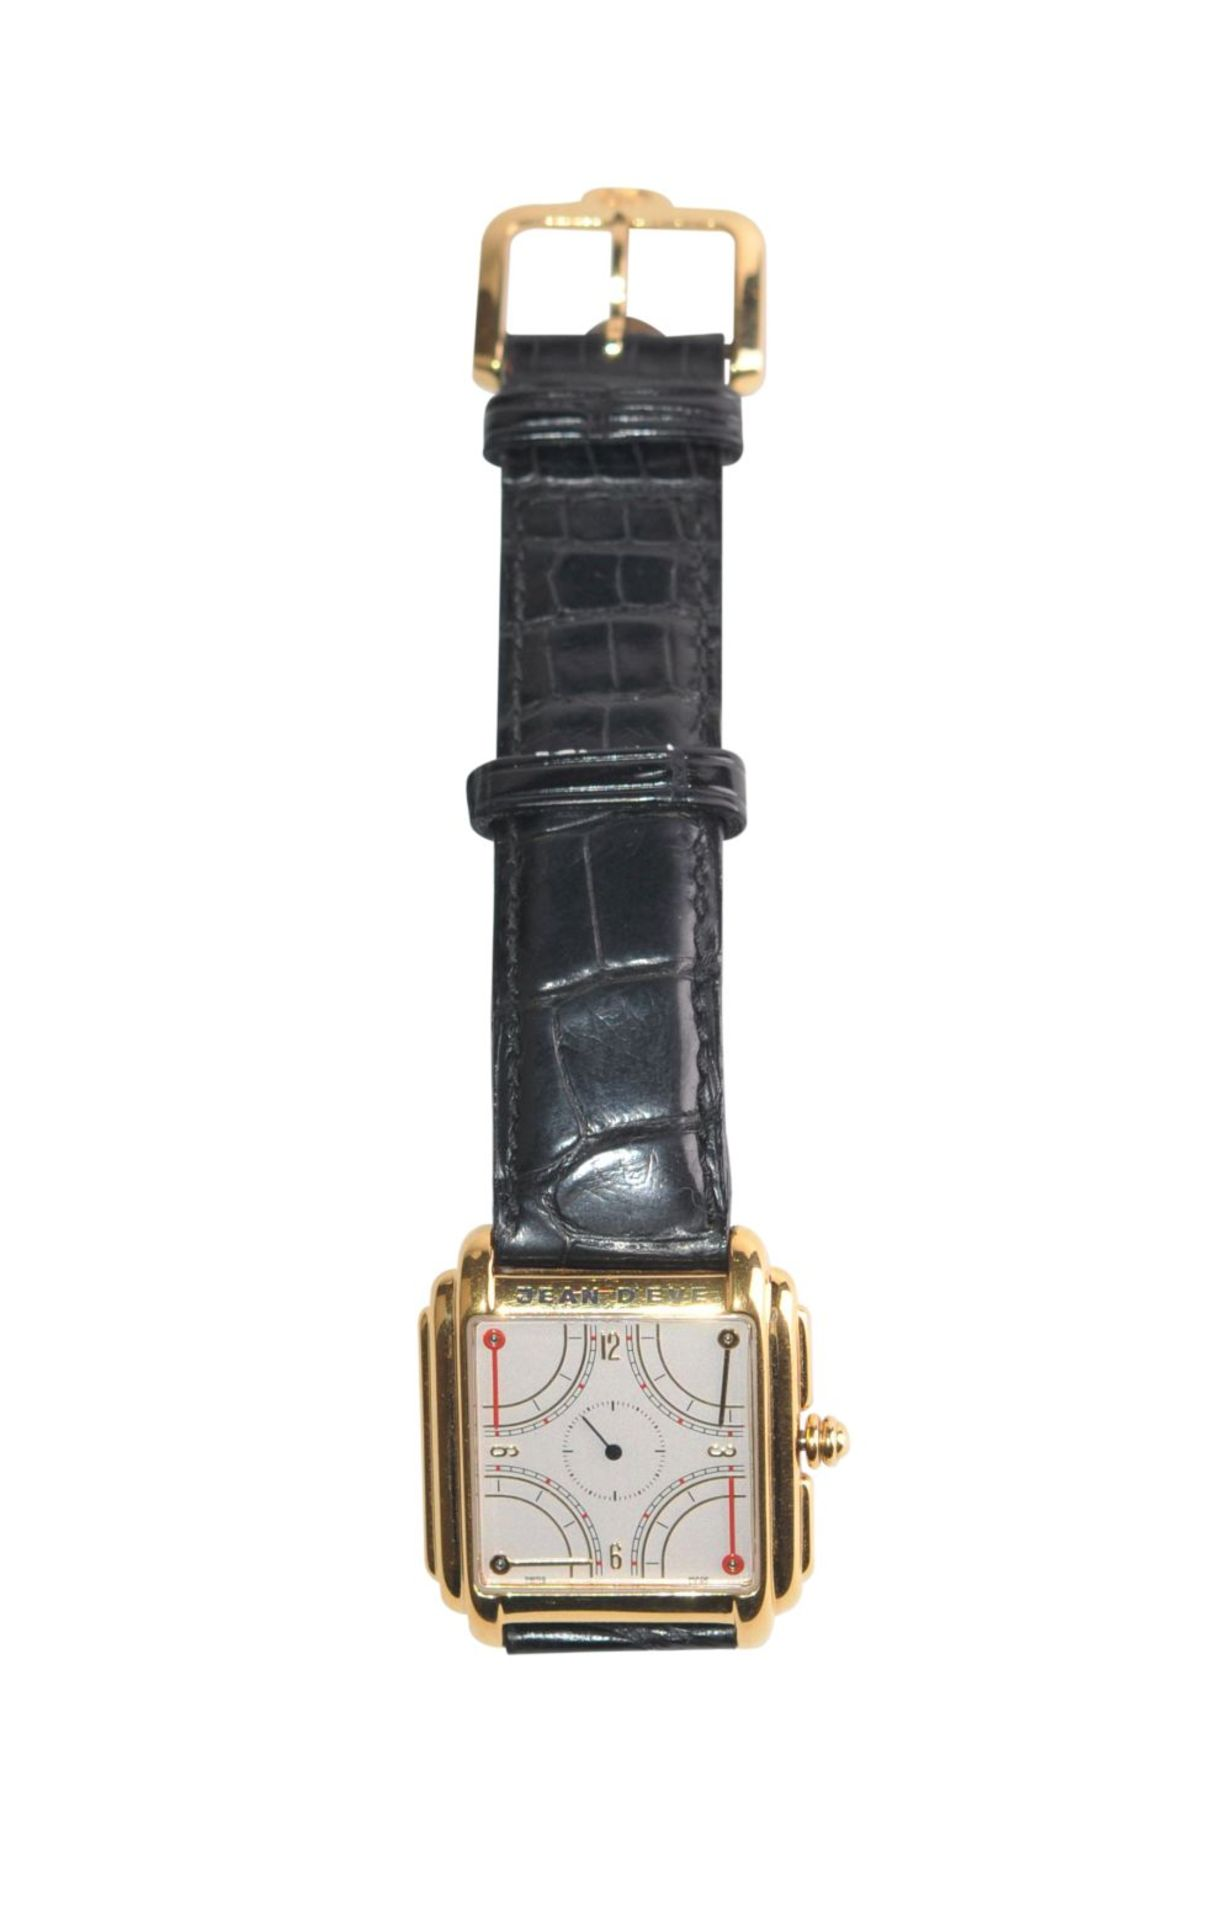 Los 40 - Jean d´Eve QuartaClock with a unique design, reveals a particular reading of the time by means of